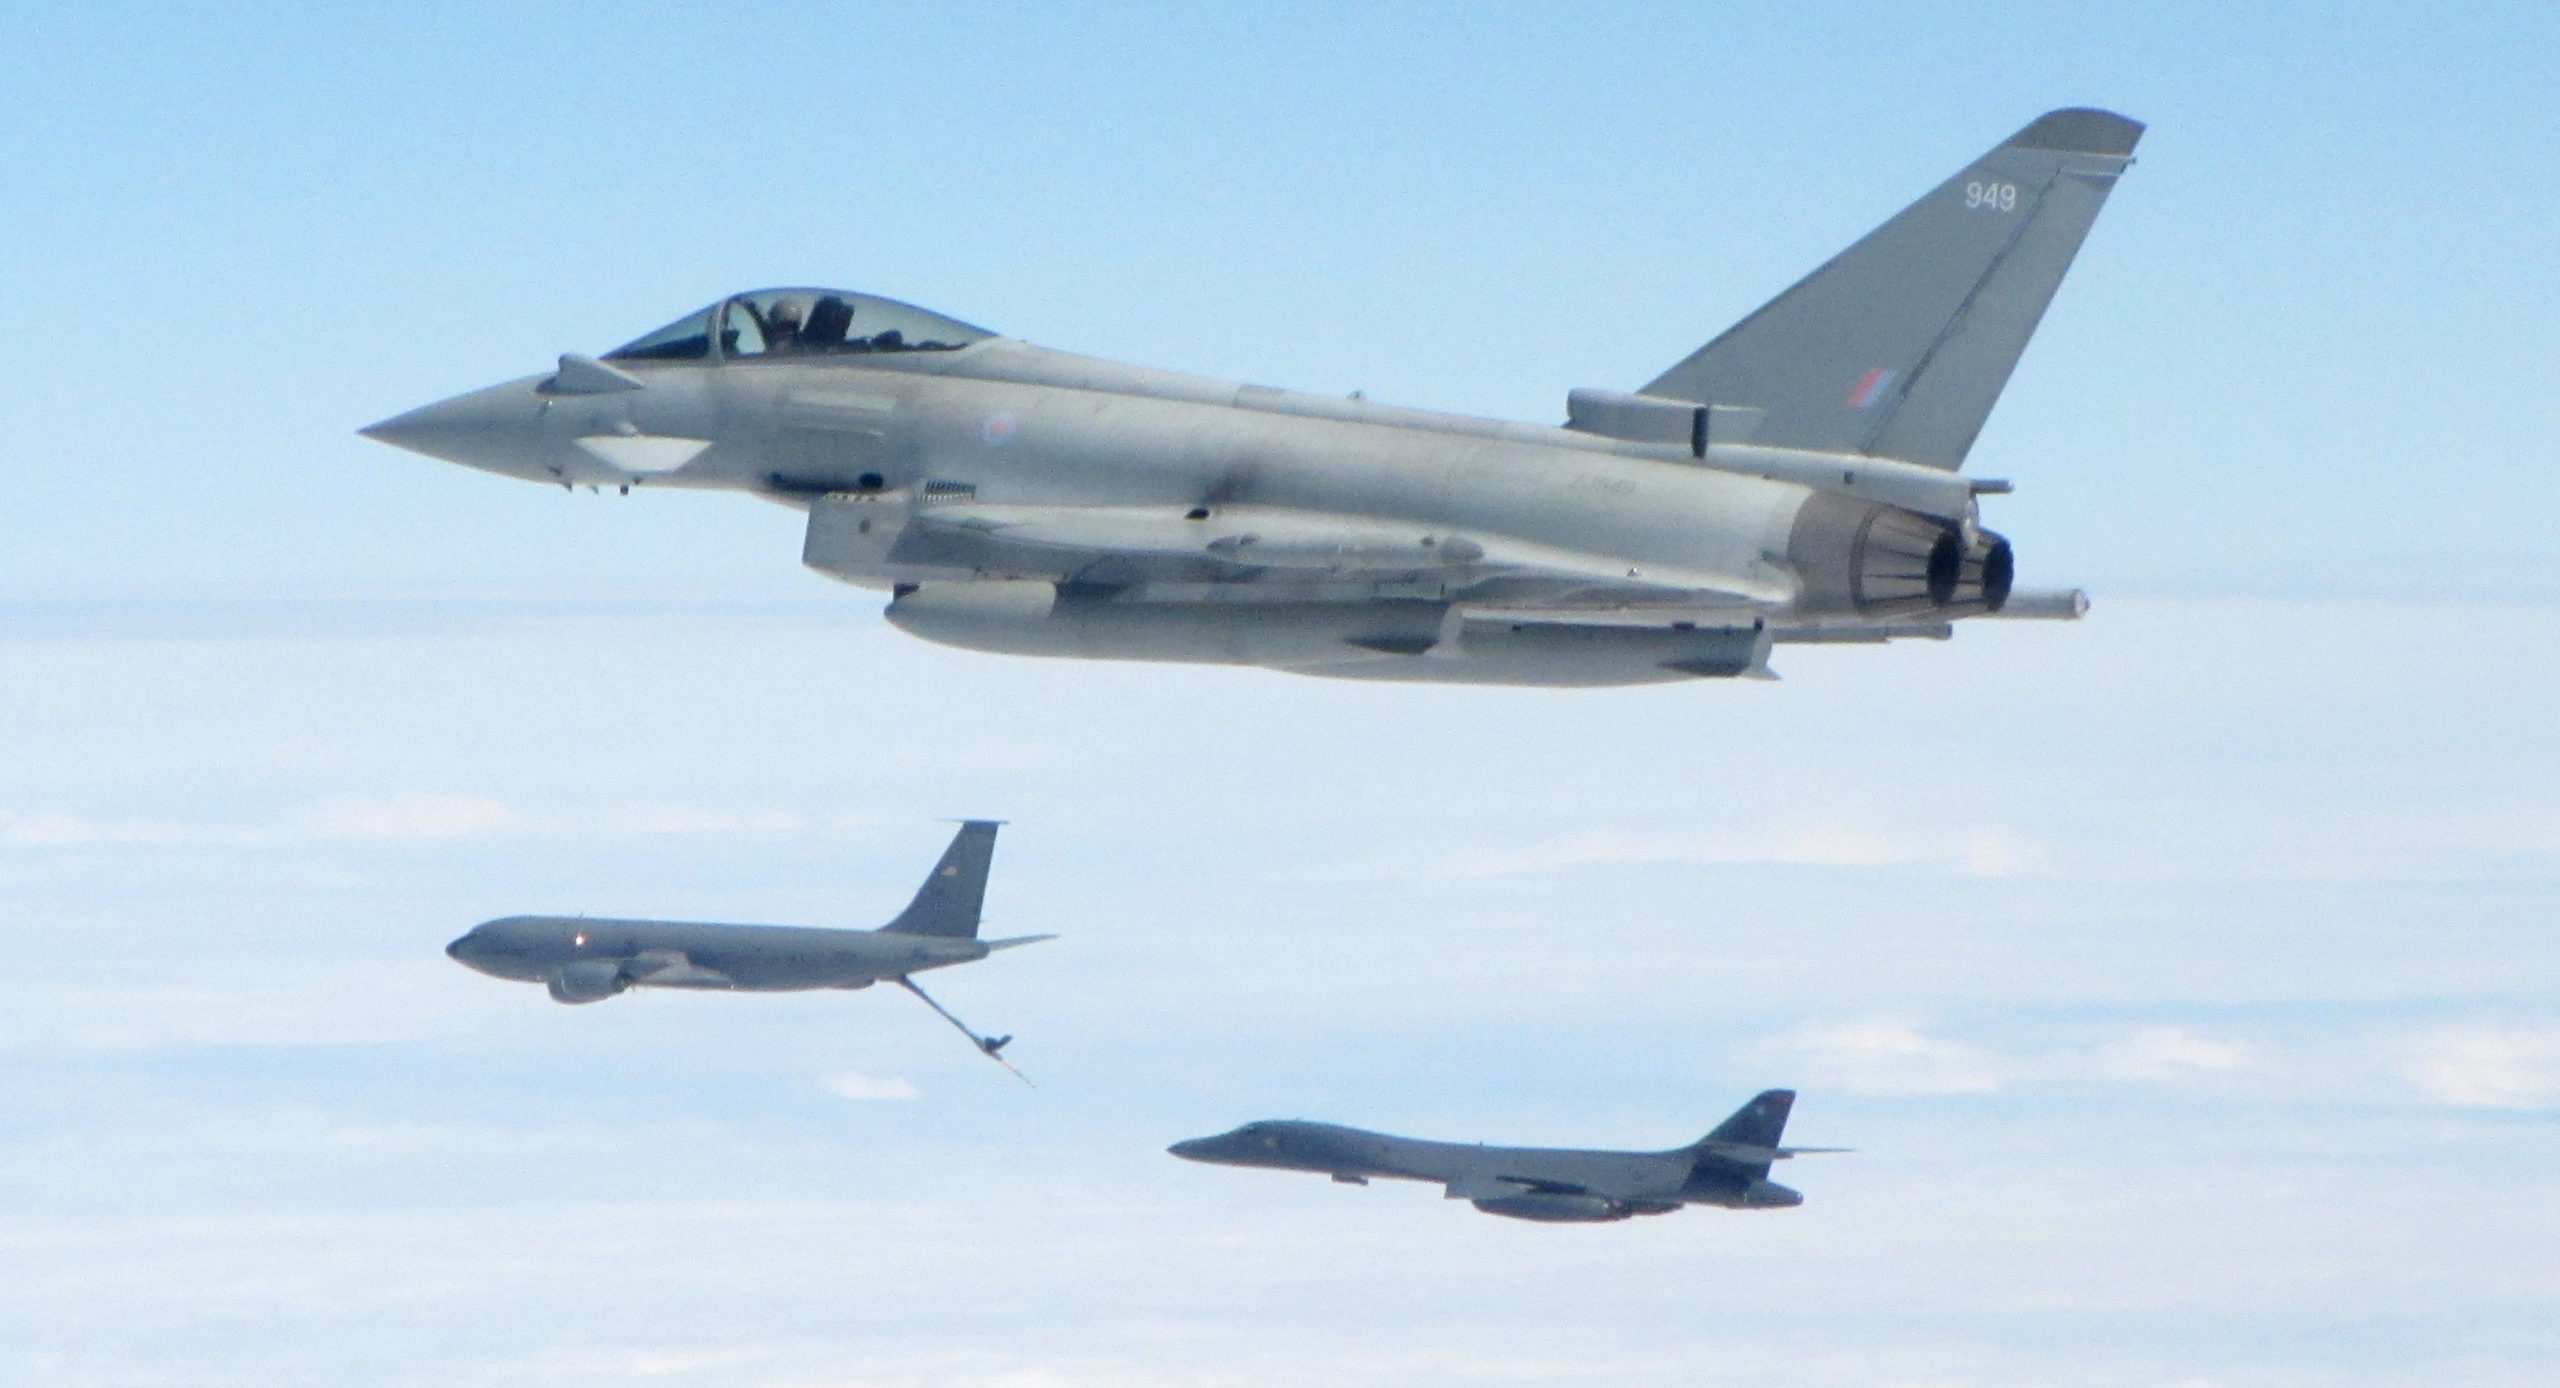 Typhoons based at RAF Lossiemouth escorting a US bomber.